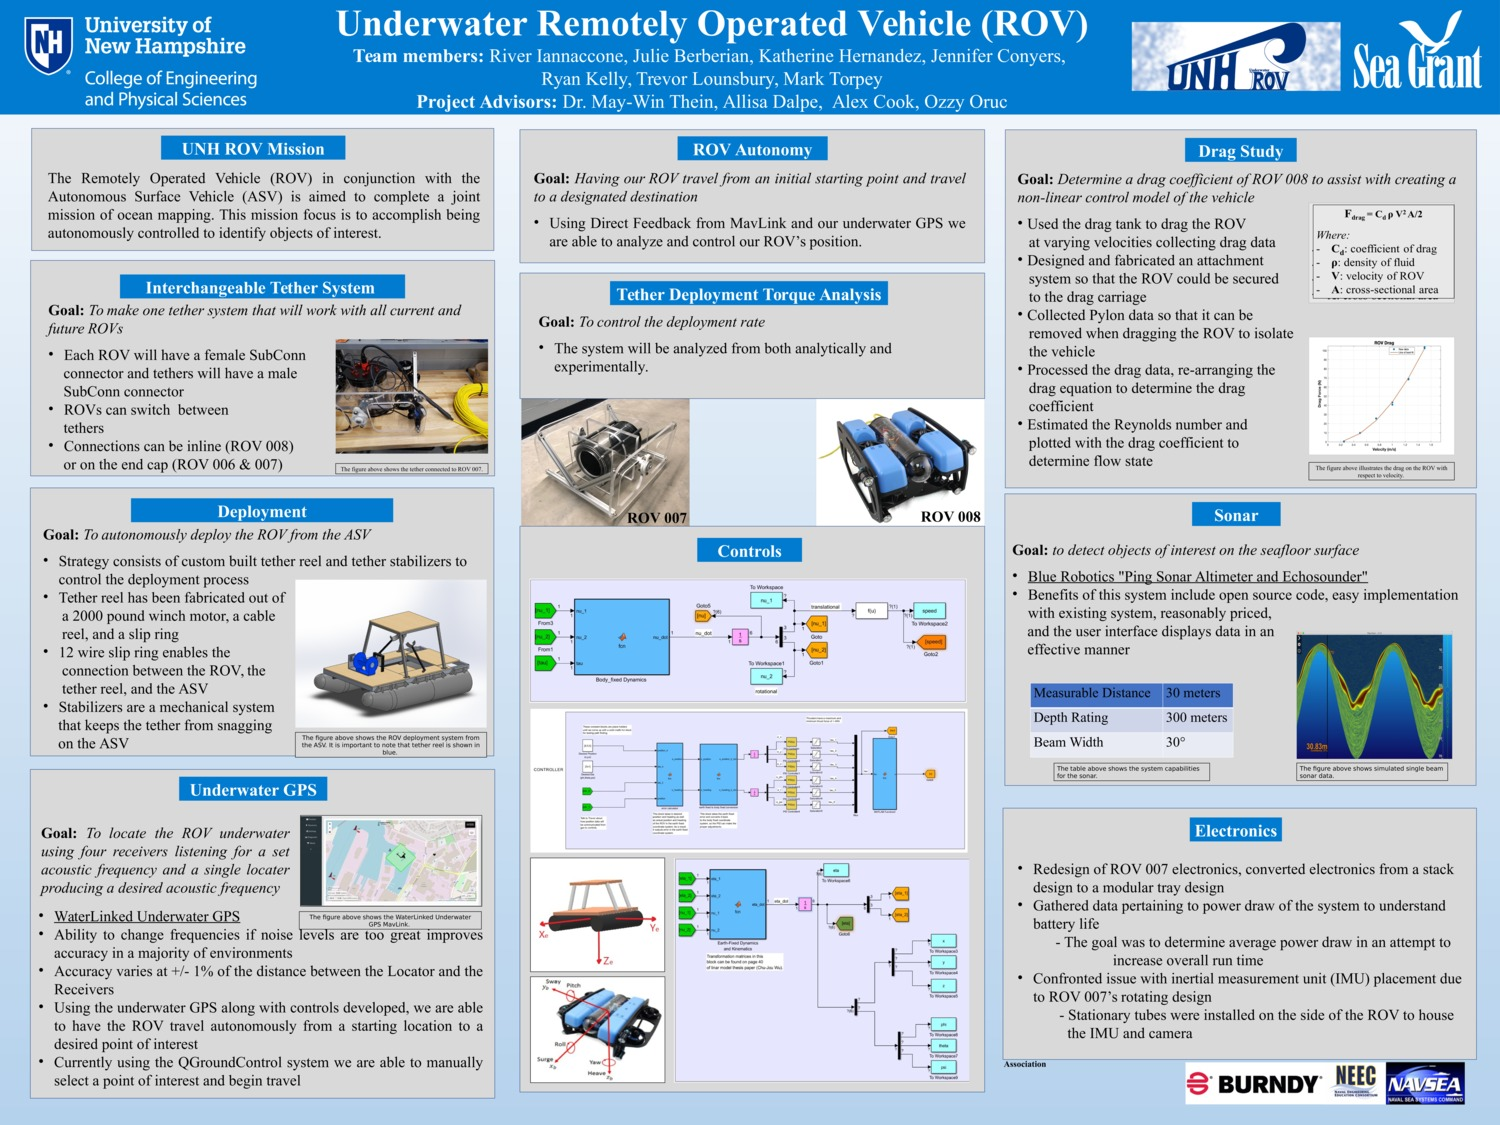 Underwater Remotely Operated Vehicle (Rov) by jeb1031